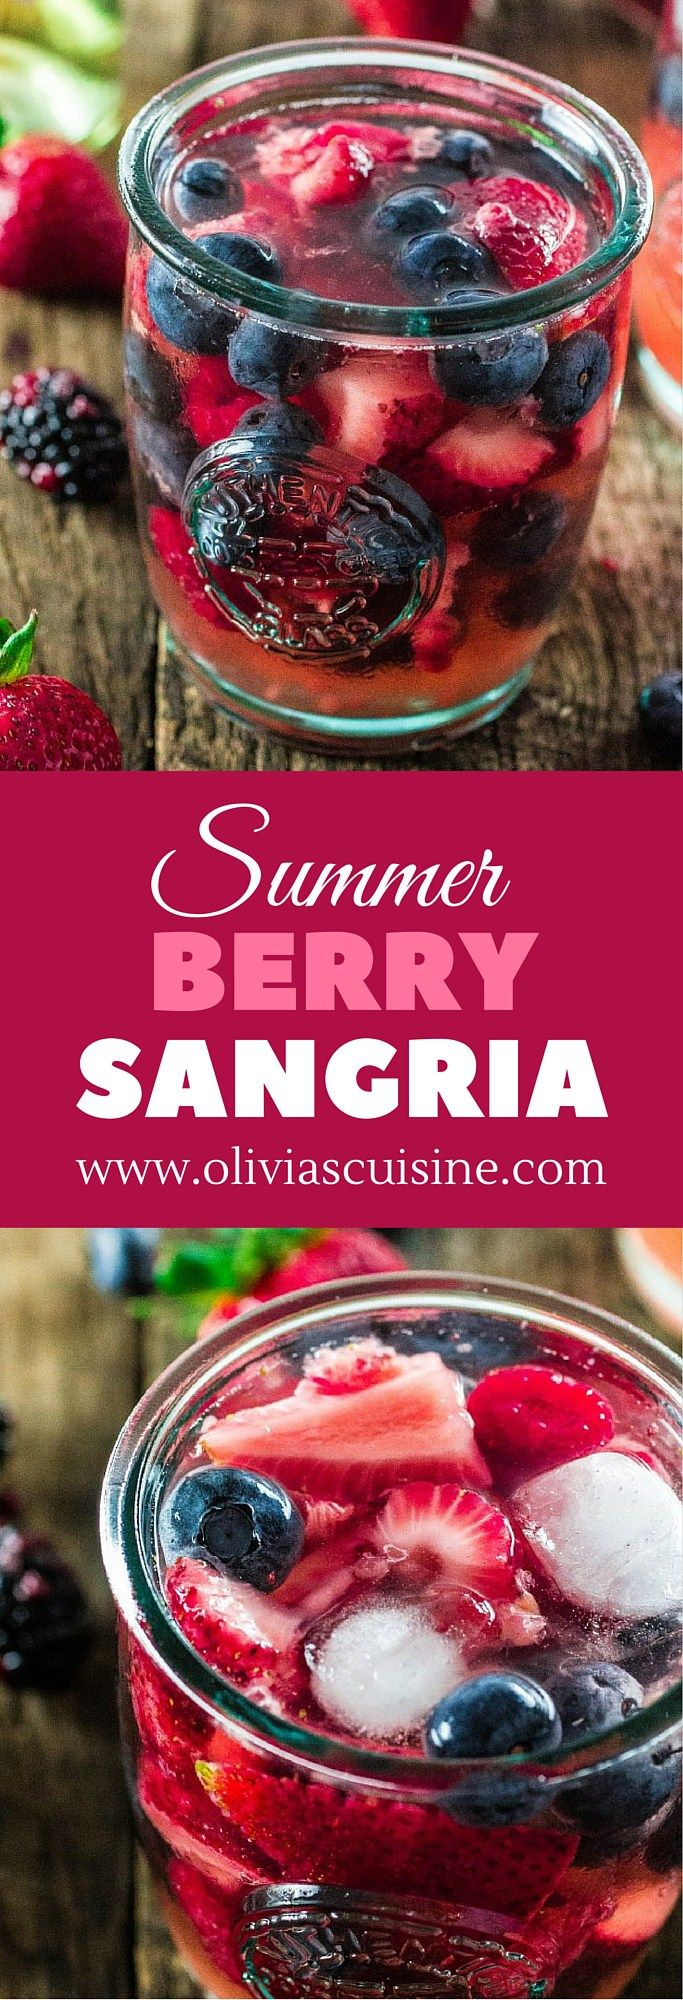 Summer Berry Sangria   www.oliviascuisine.com   A delicious summer sangria made with Moscato, strawberries, raspberries, blackberries and blueberries! #MiddleSister #DropsofWisdom #Sp